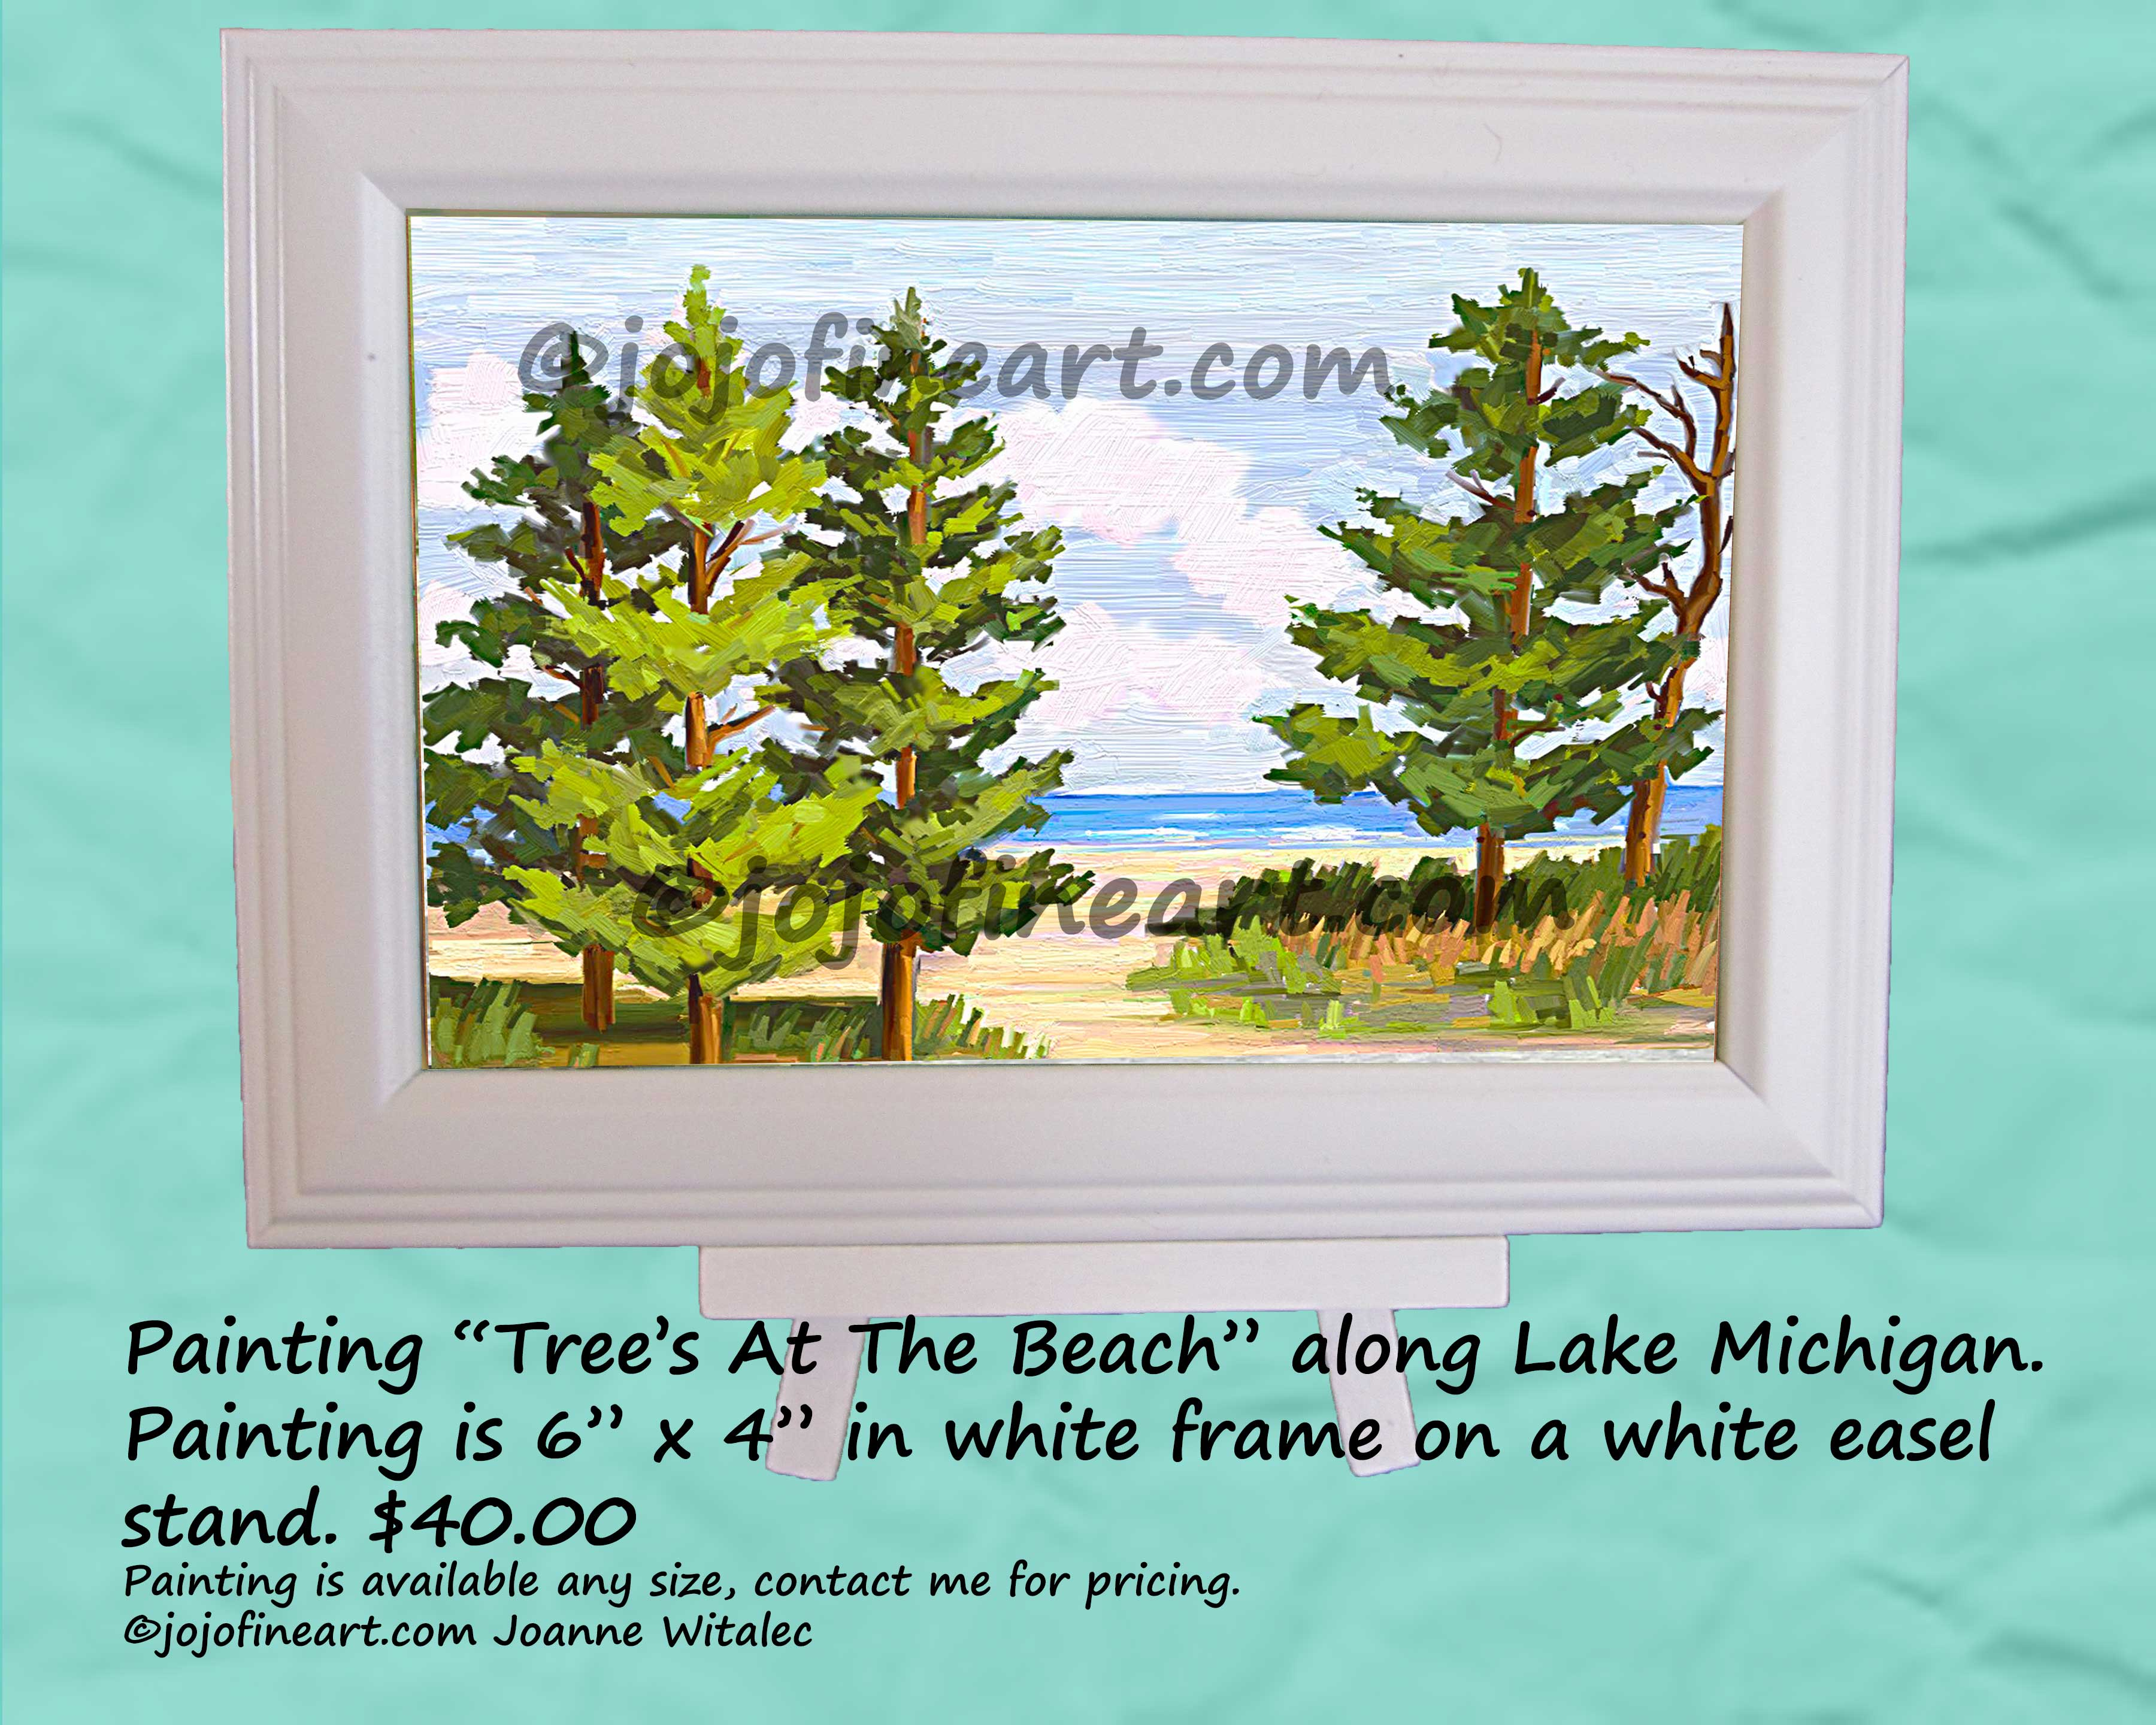 Paintings Of Area's Around Michigan That Inspire Me – Art by